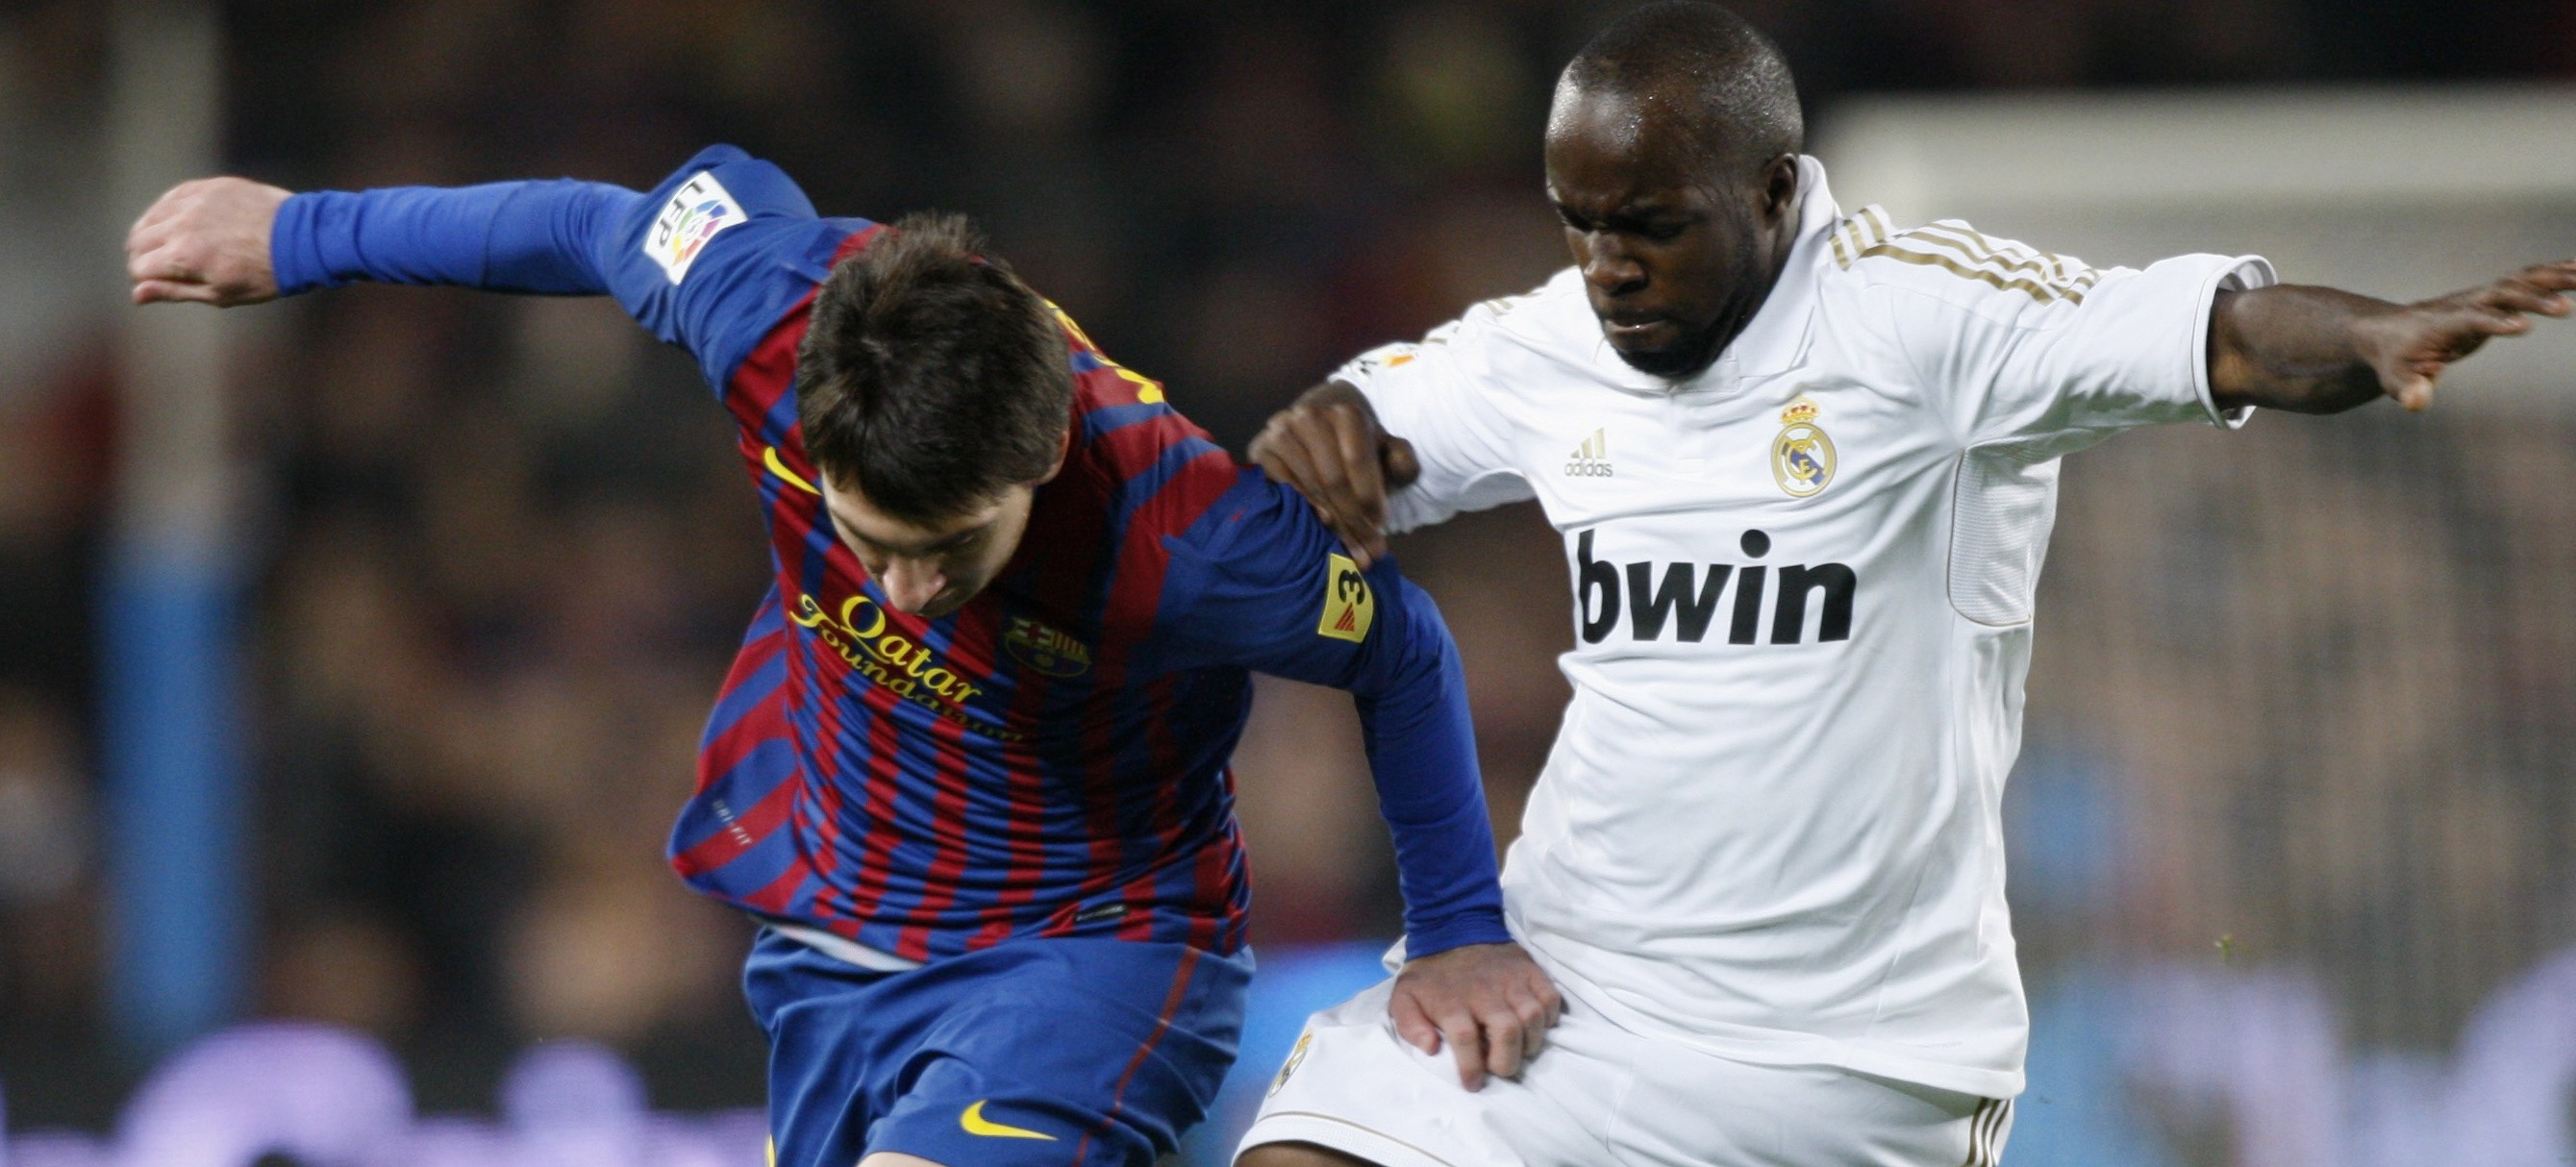 Barcelona's Messi is challenged by Real Madrid's Diarra during their Spanish King's Cup quarter-final soccer match in Barcelona